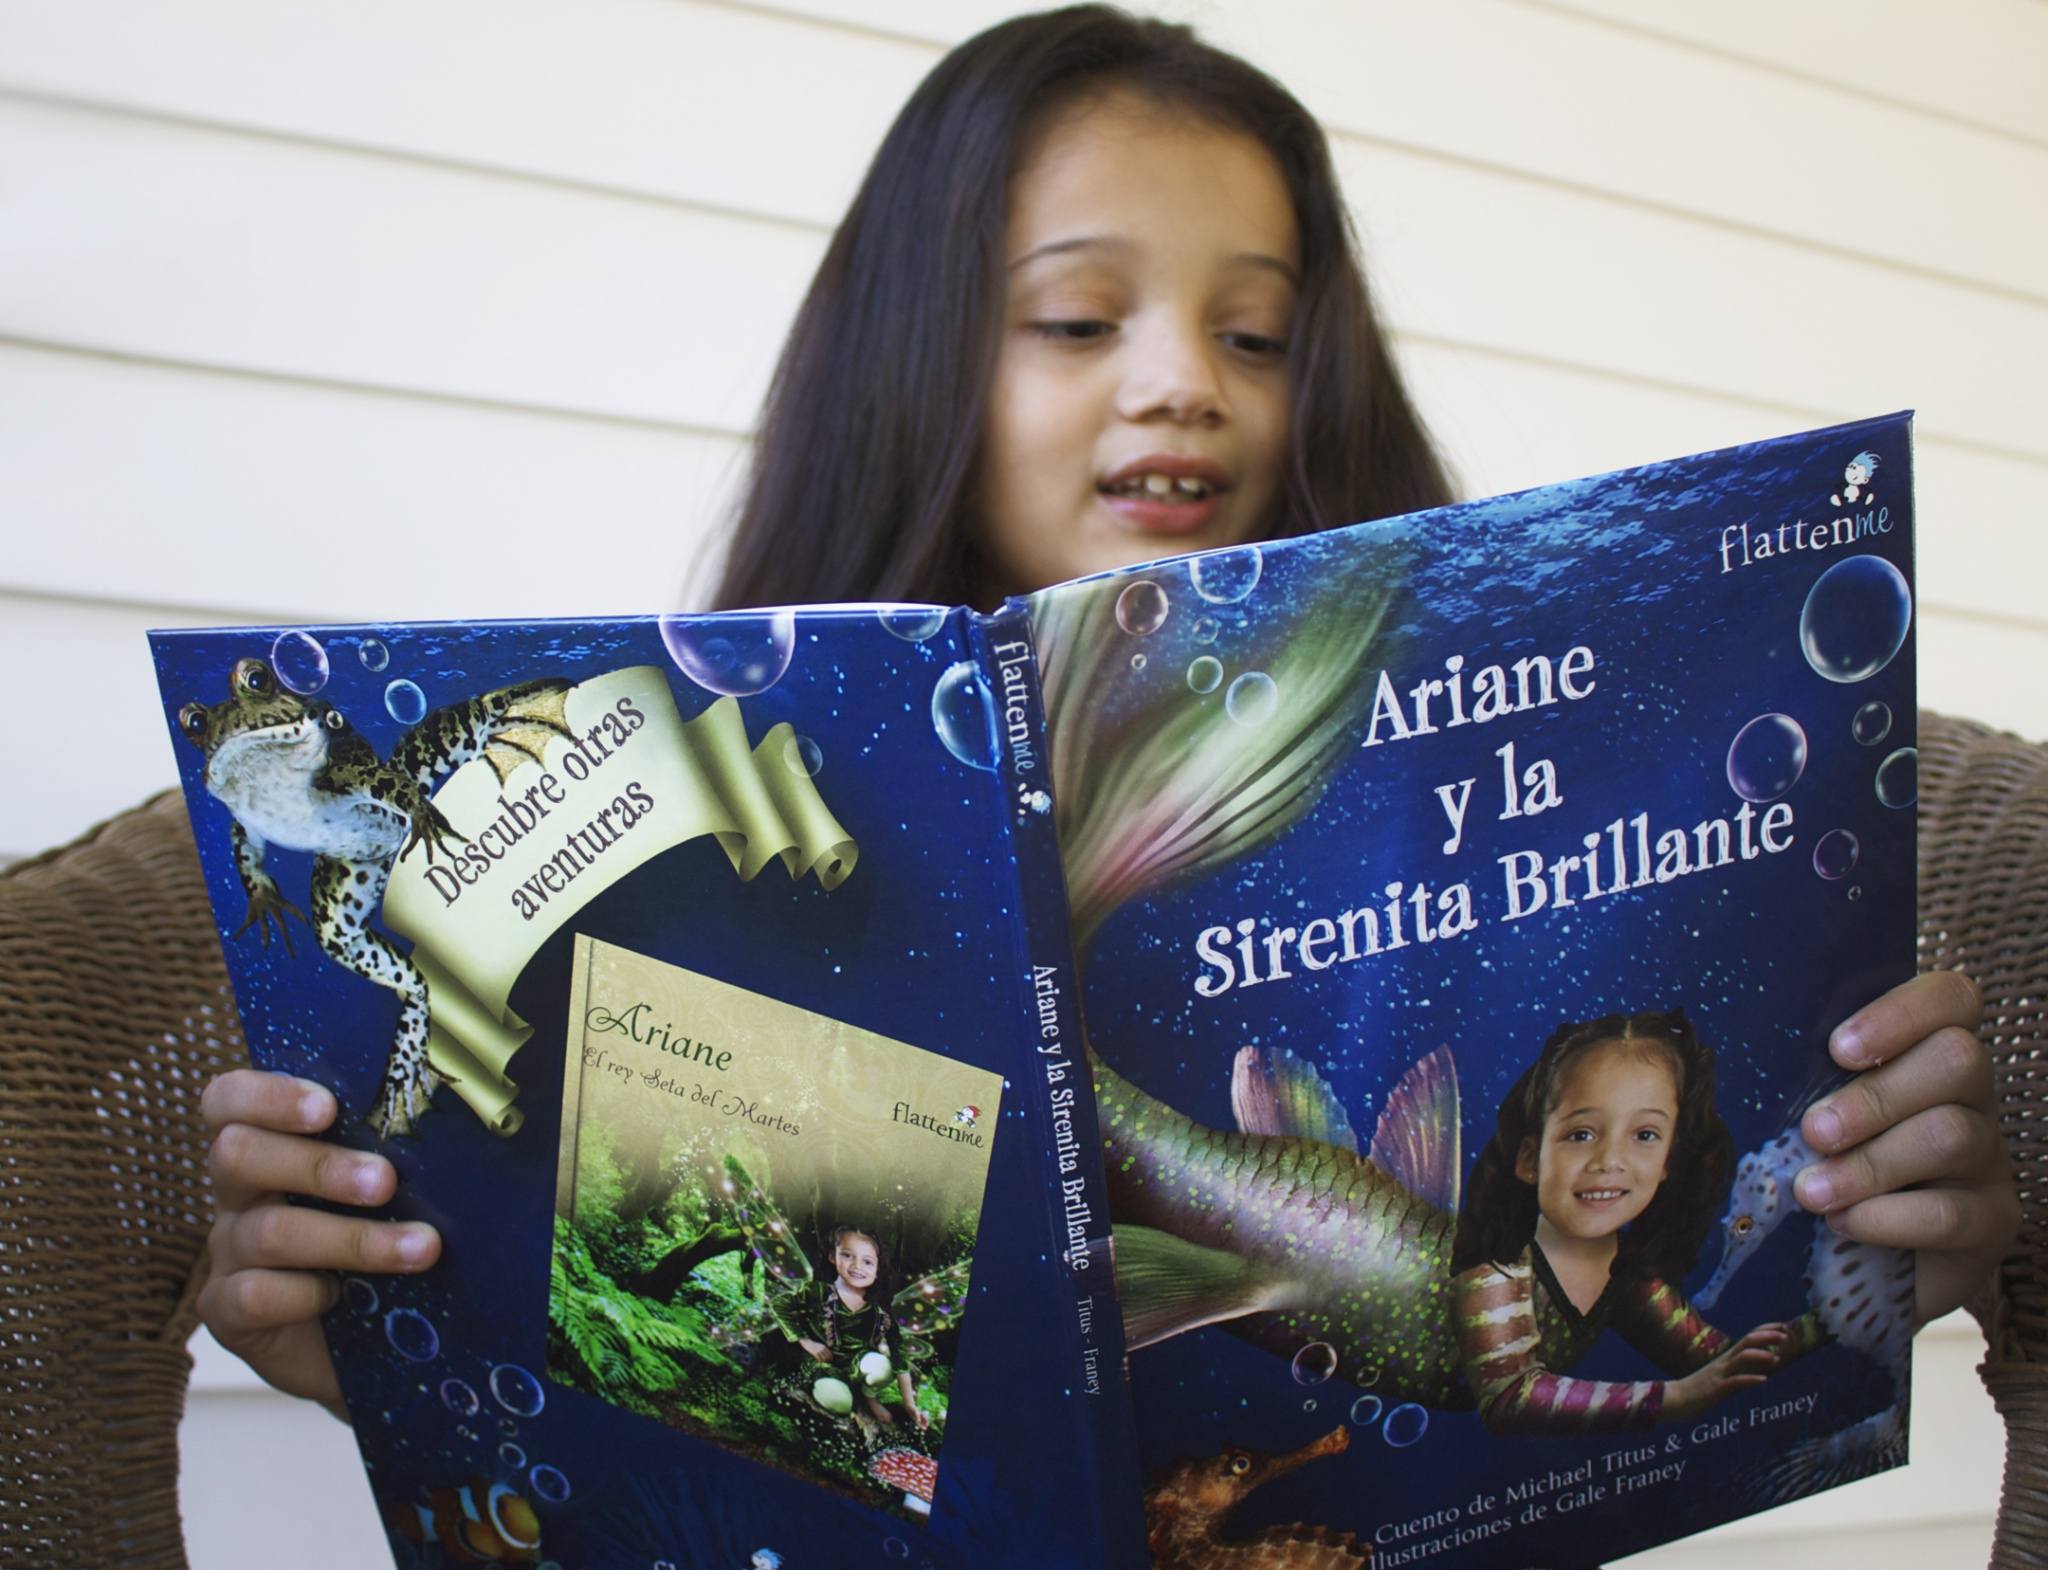 Flattenme Personalized books Spanish